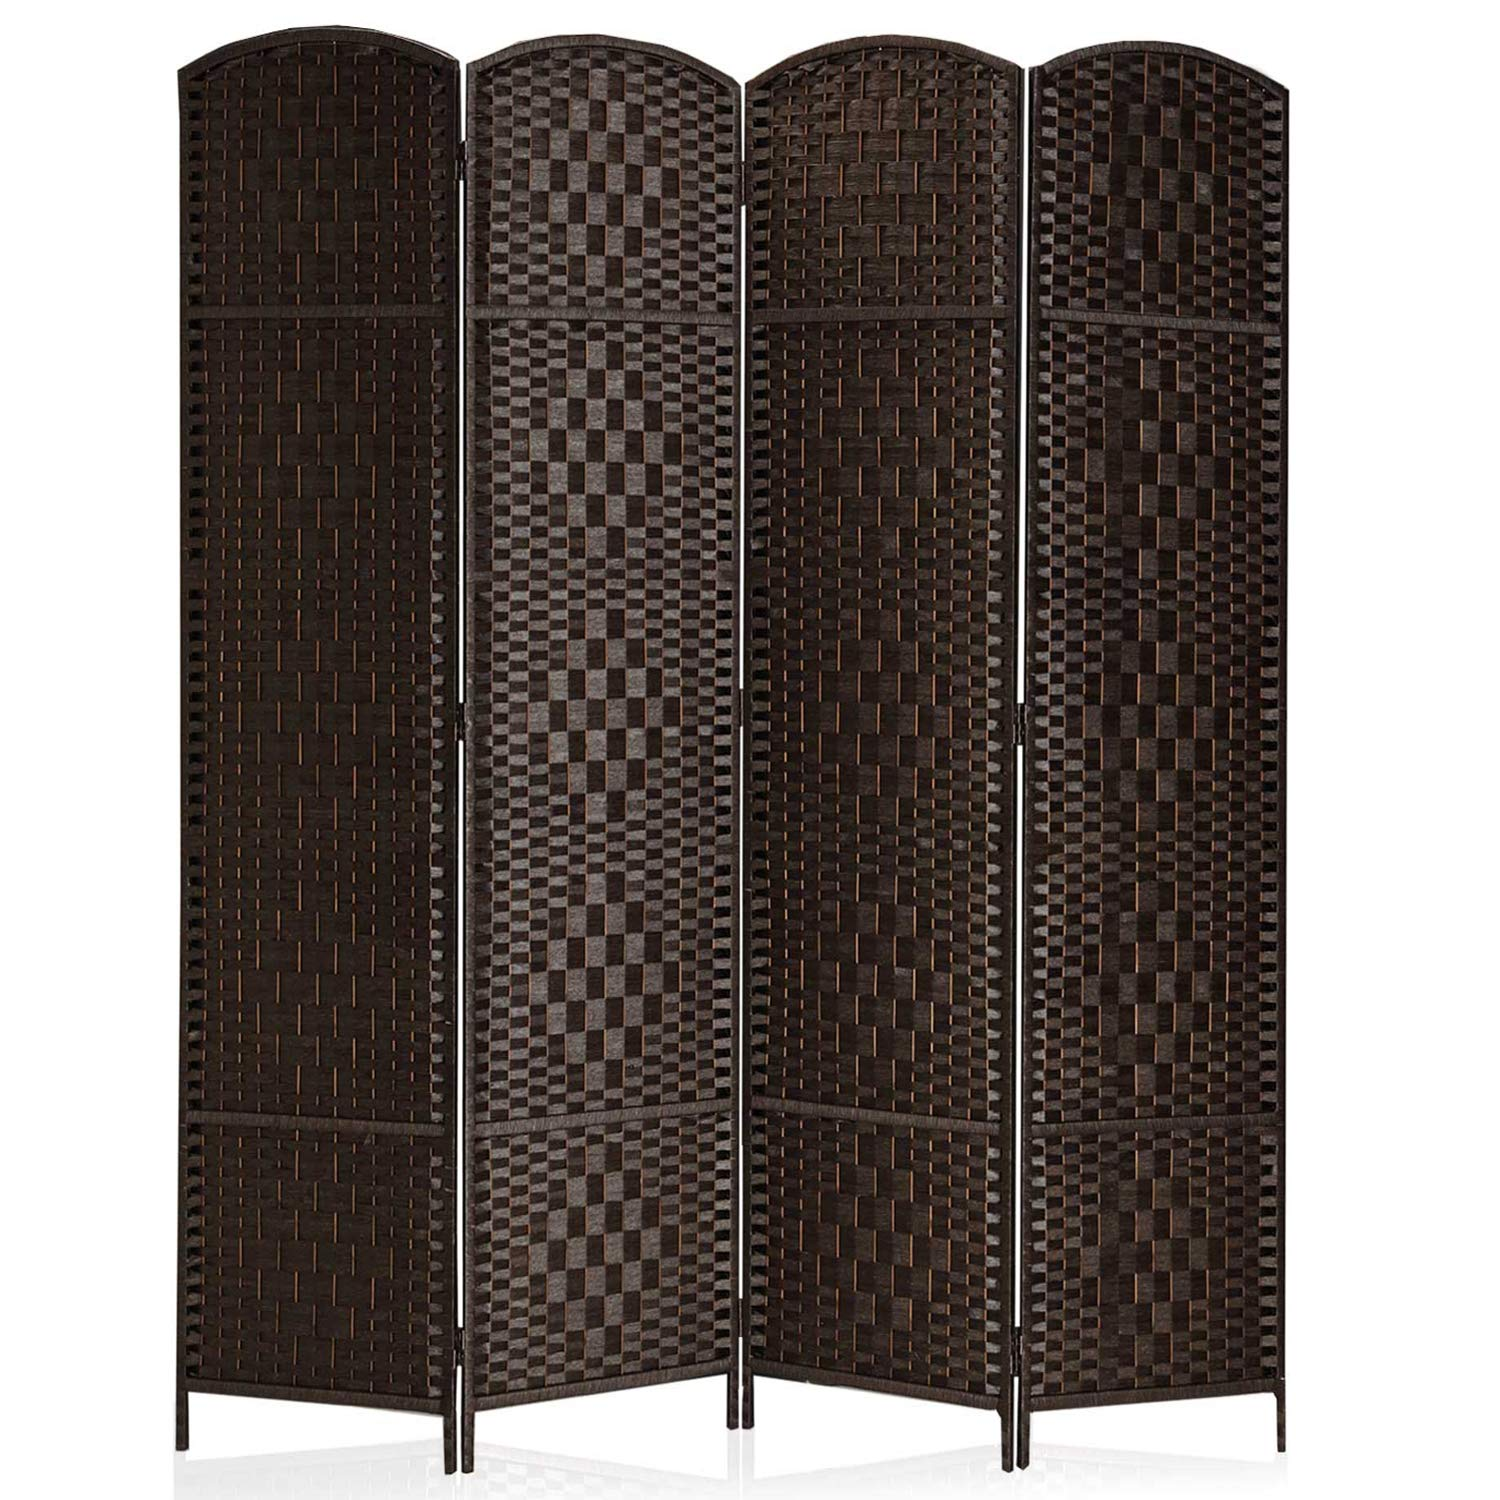 Rose Home Fashion RHF 6 ft.Tall-15.7'' Wide Diamond Weave Fiber 4 Panels Room Divider/4 Panels Screen Folding Privacy Partition Wall Room Divider Freestanding 4 Panel Dark Coffee by Rose Home Fashion